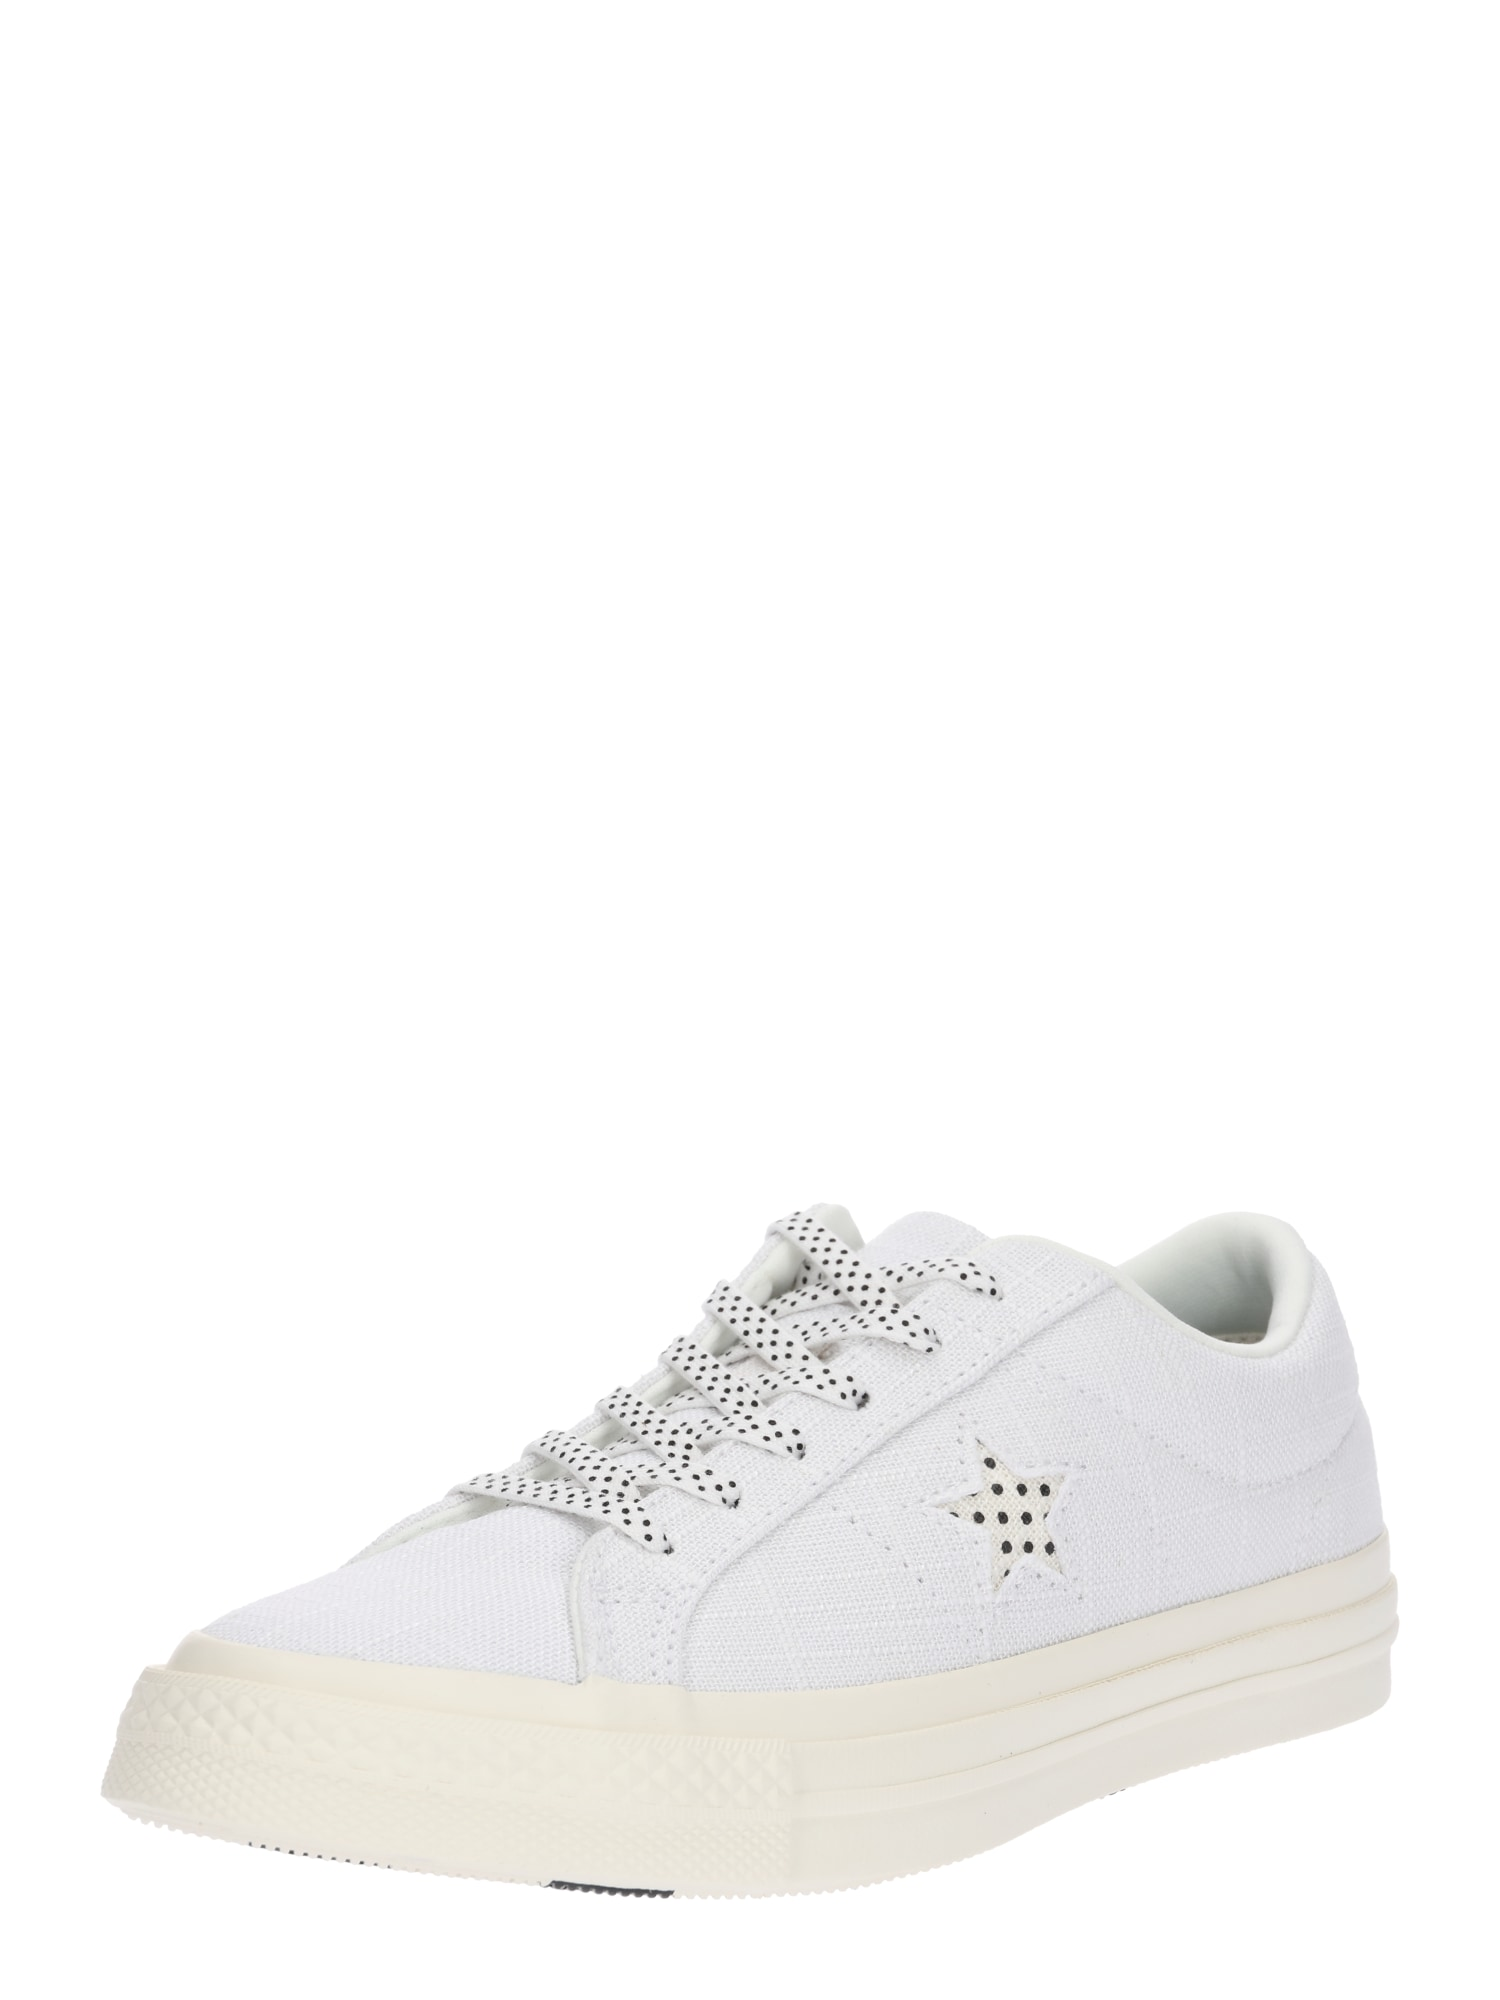 CONVERSE, Dames Sneakers laag 'ONE STAR OX', zwart / wit